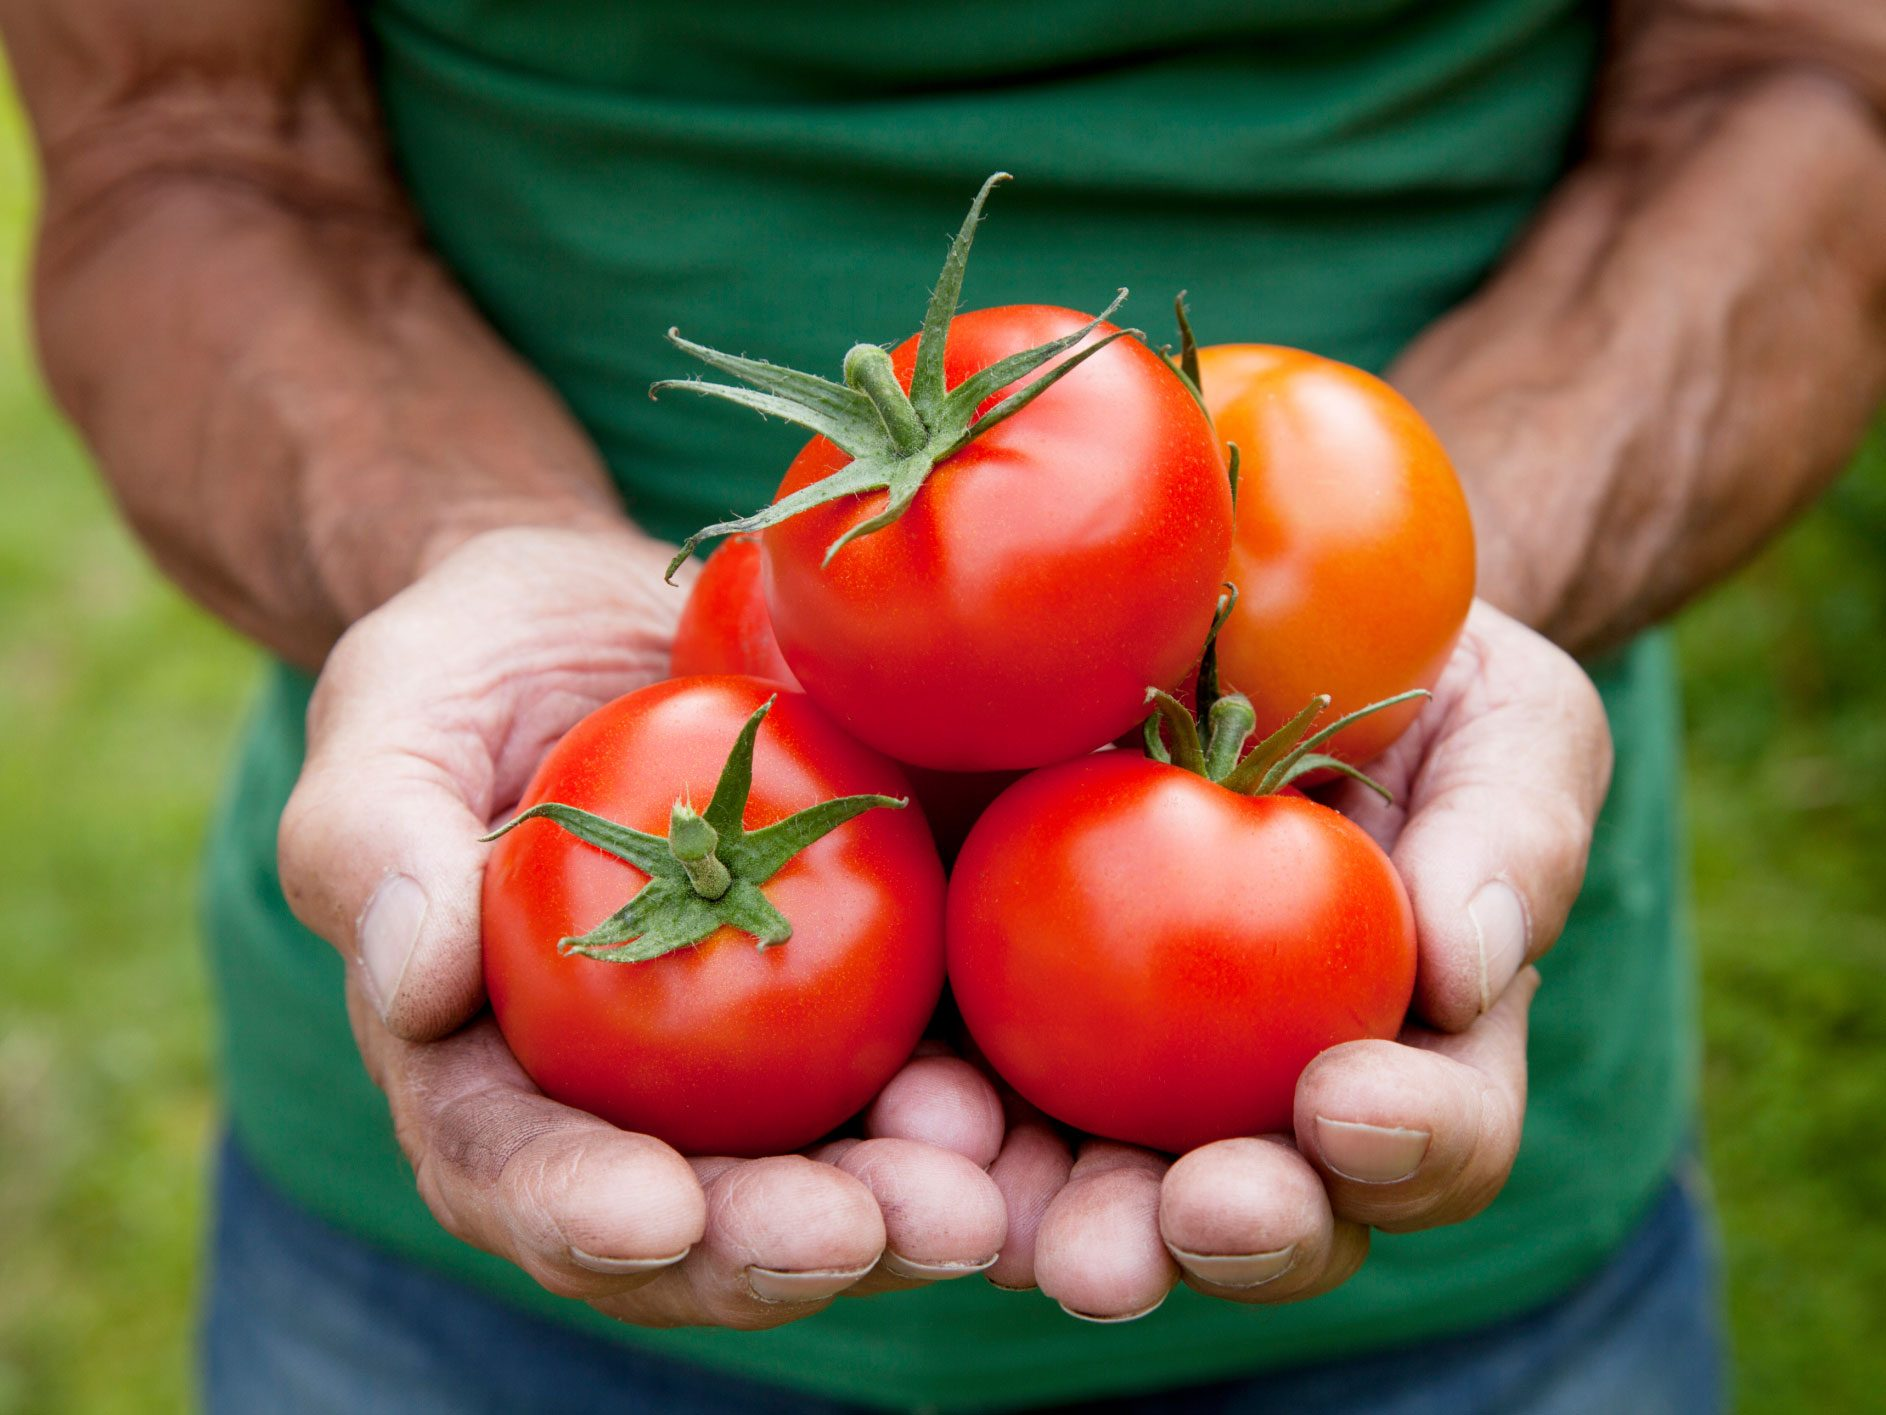 Tomatoes - Fresh, Sun-Dried and in Sauce